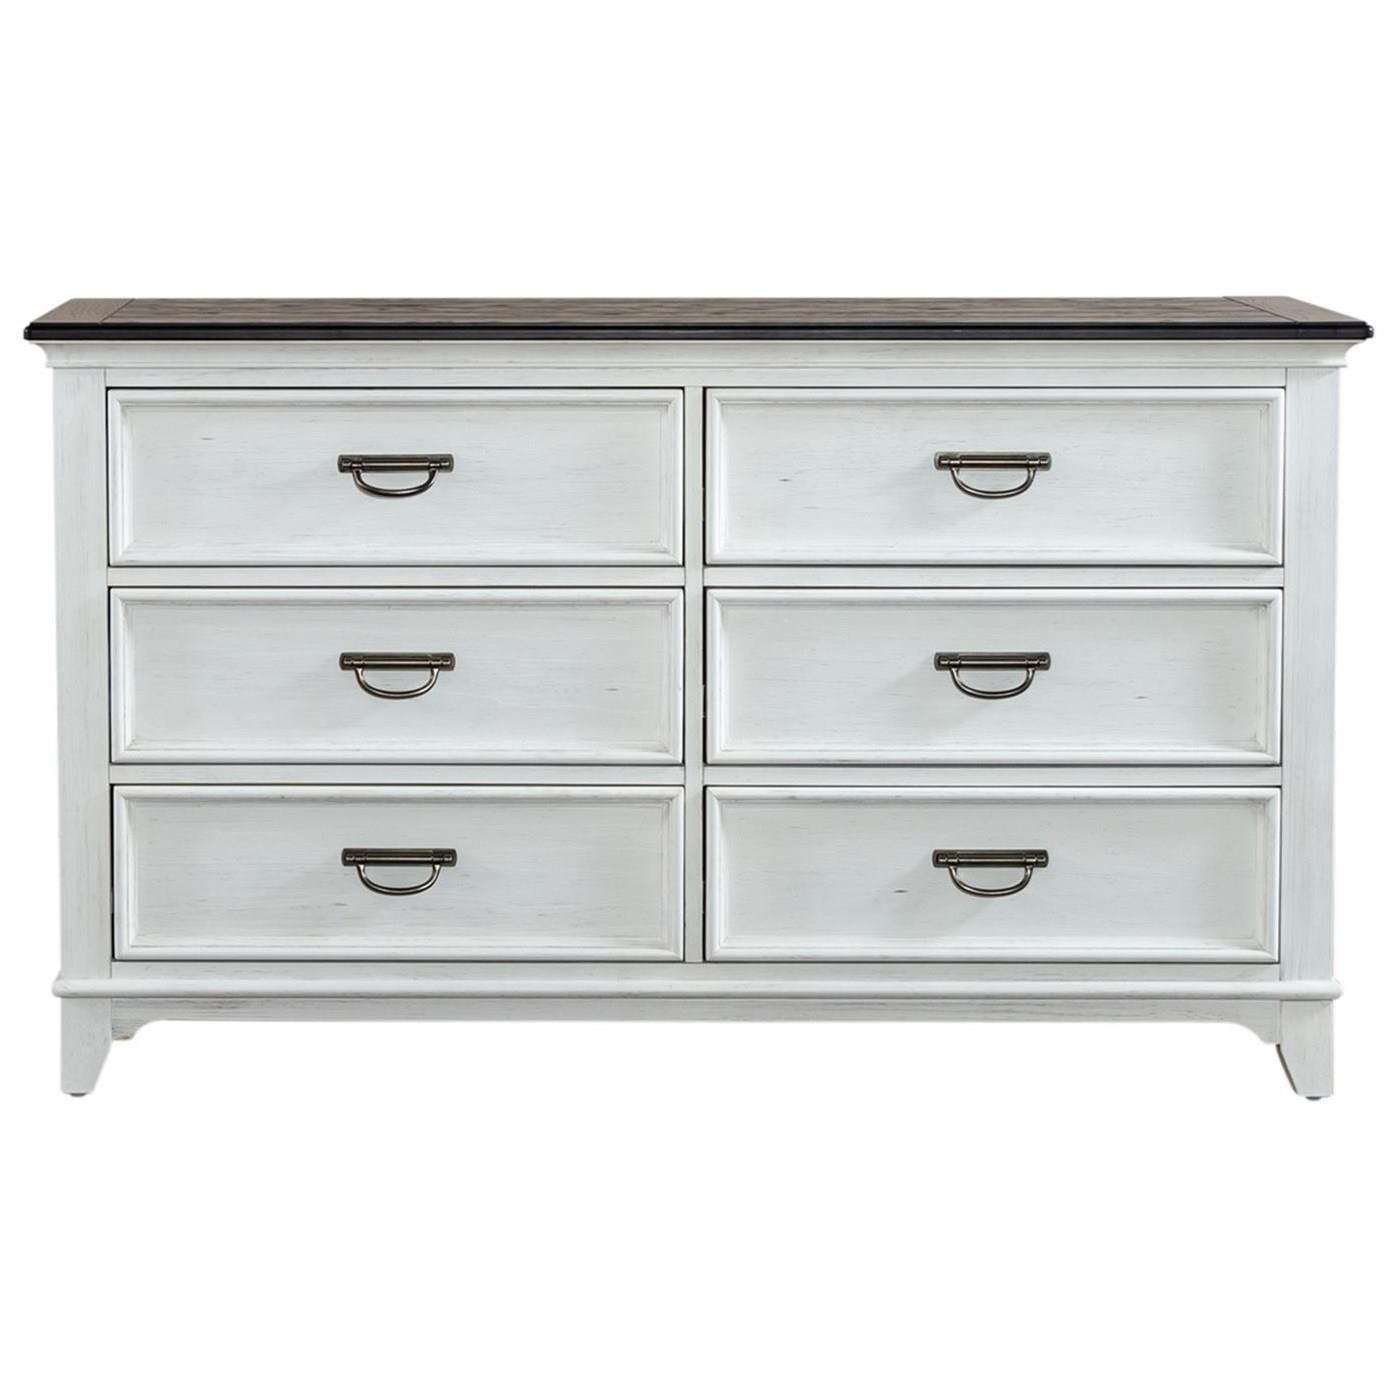 Allyson Park 6-Drawer Dresser by Liberty Furniture at Catalog Outlet